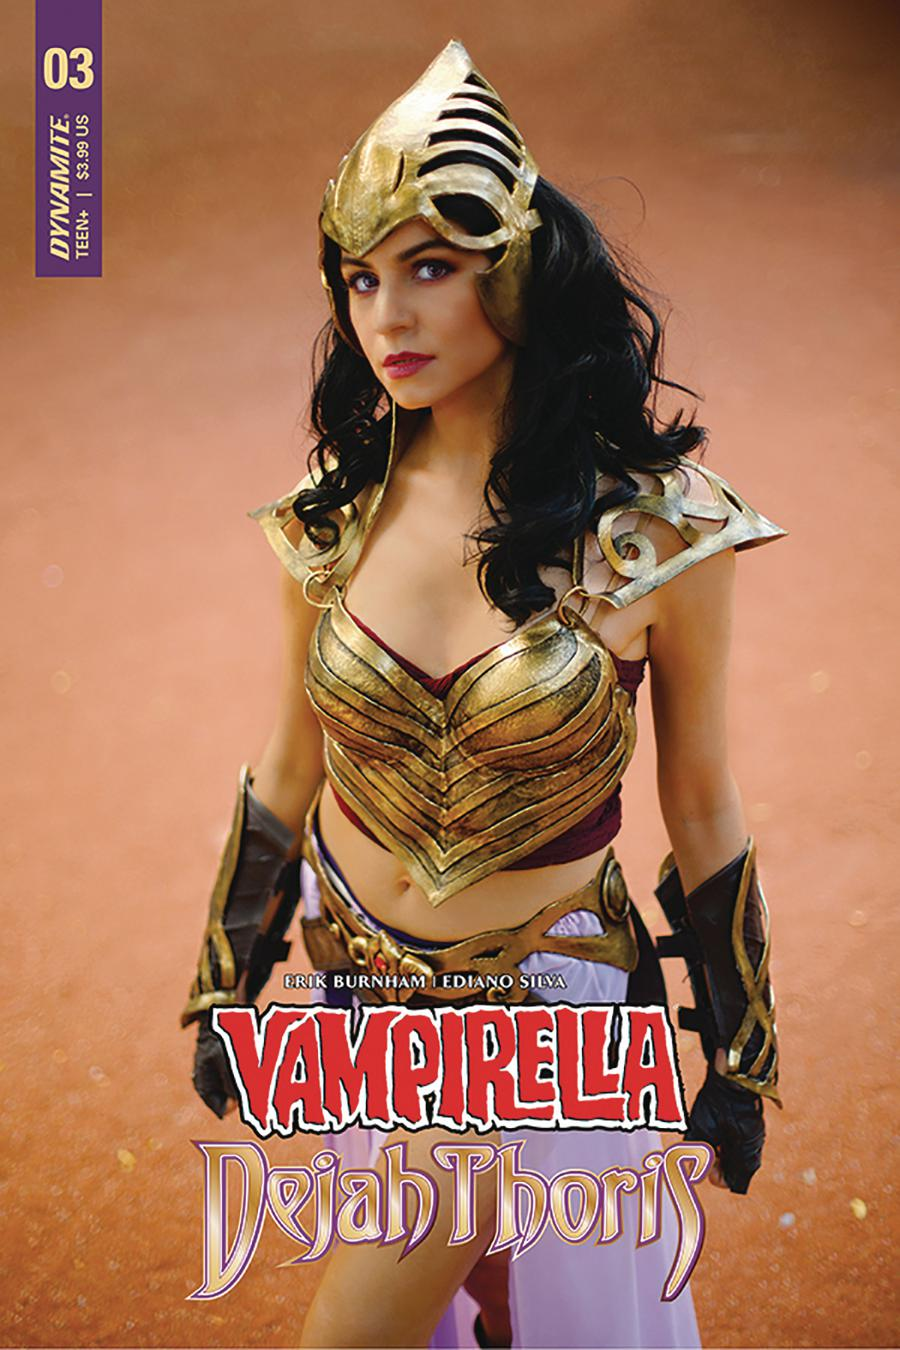 Vampirella Dejah Thoris #3 Cover F Variant Dejah Thoris Cosplay Photo Cover